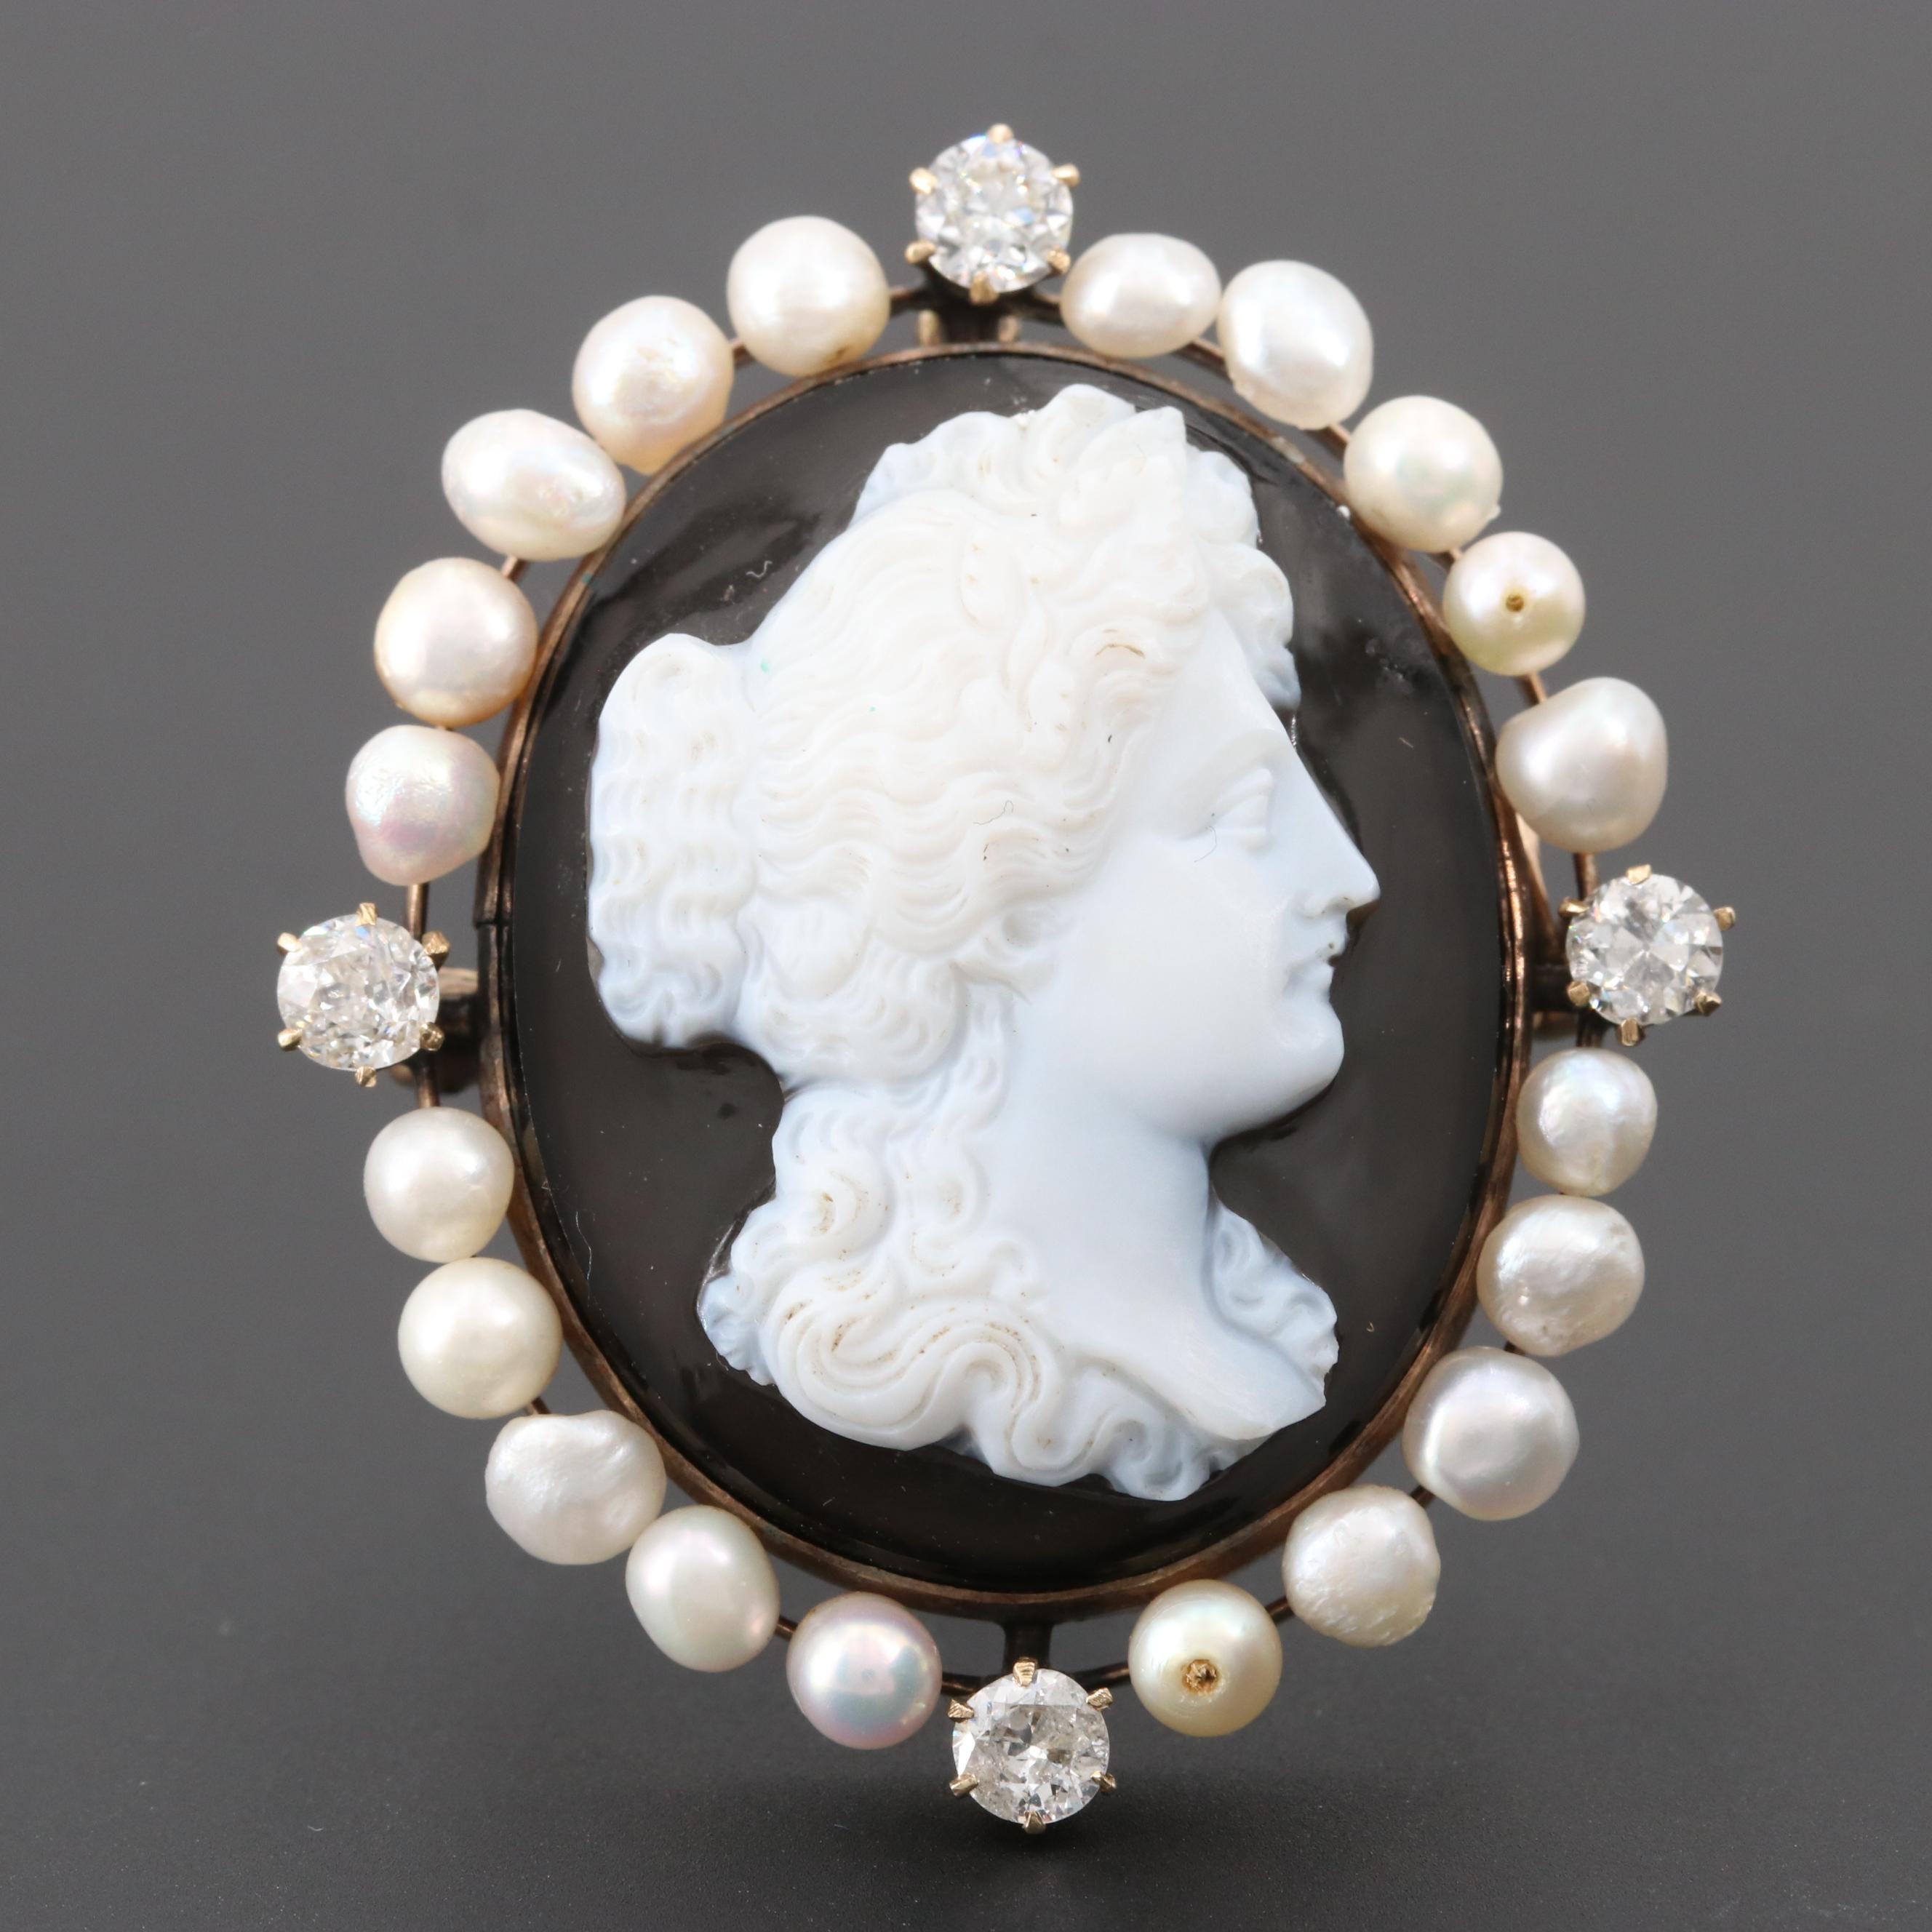 Early 1900s 10K Yellow Gold Carved Onyx Cameo with Pearl and Diamond Accents